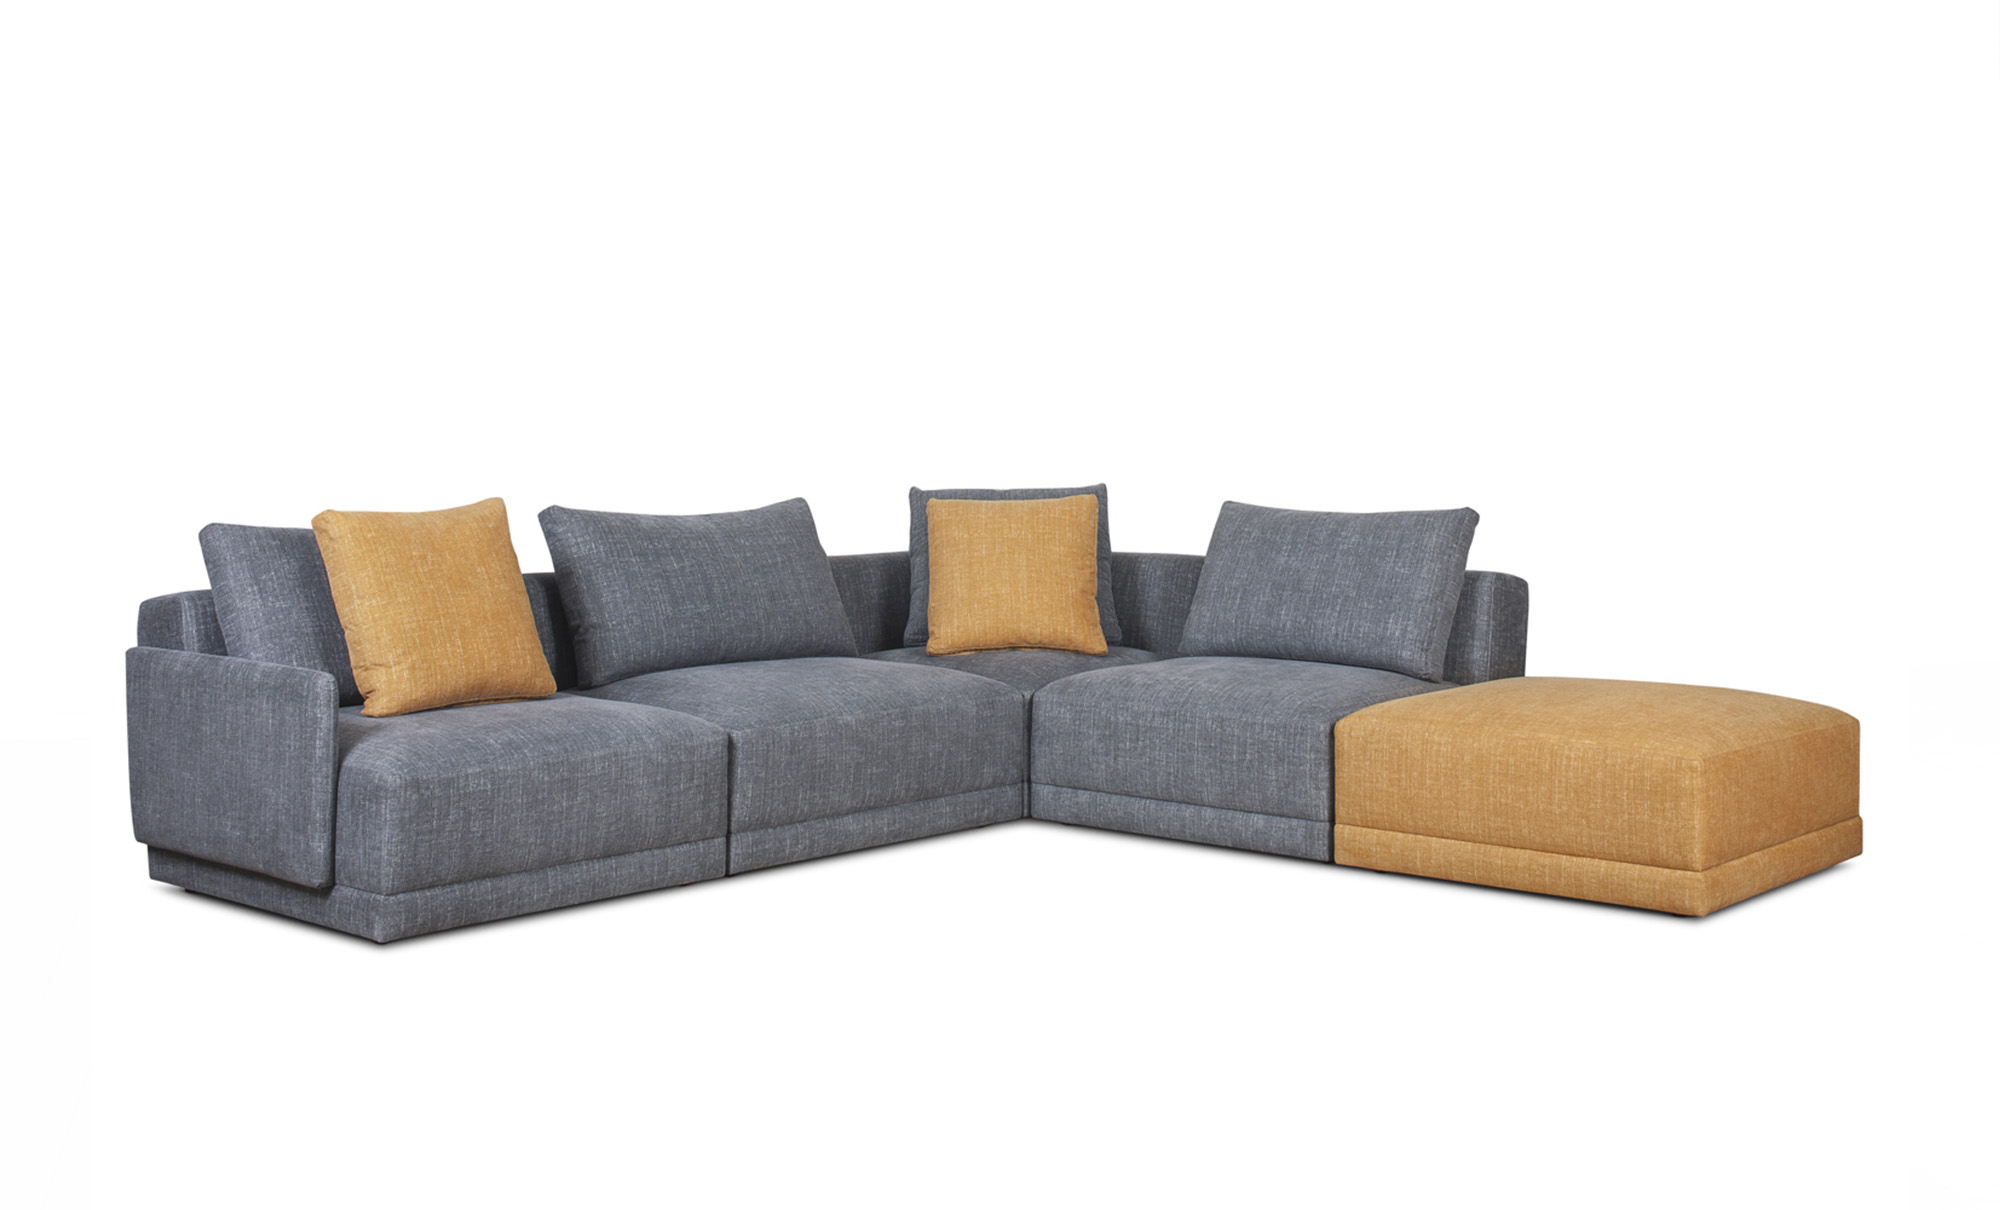 Cleo Sofas Fanuli Furniture